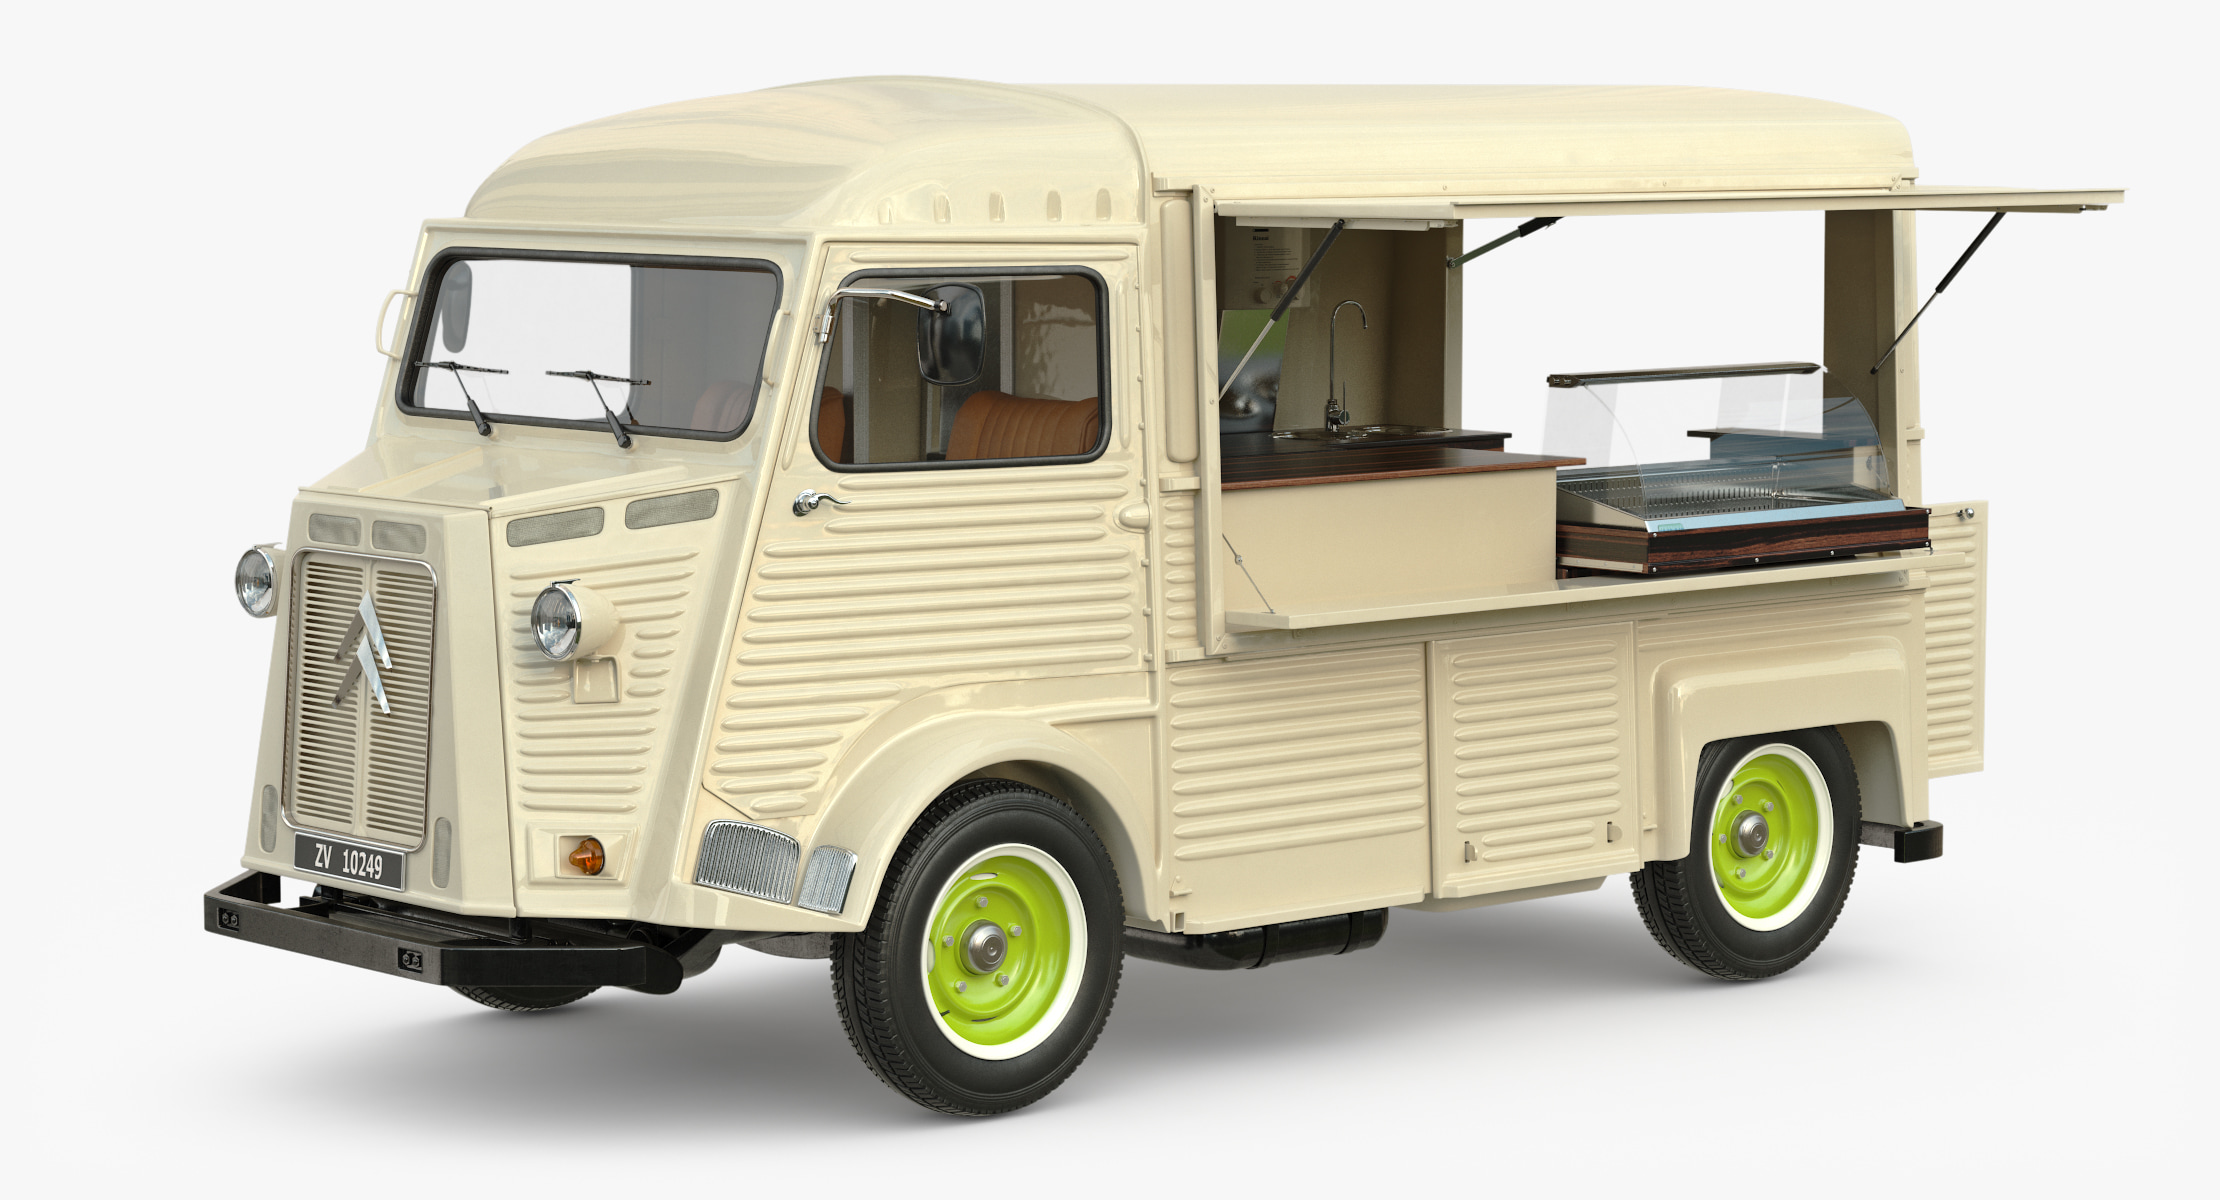 Searched 3d models for food truck for sale craigslist